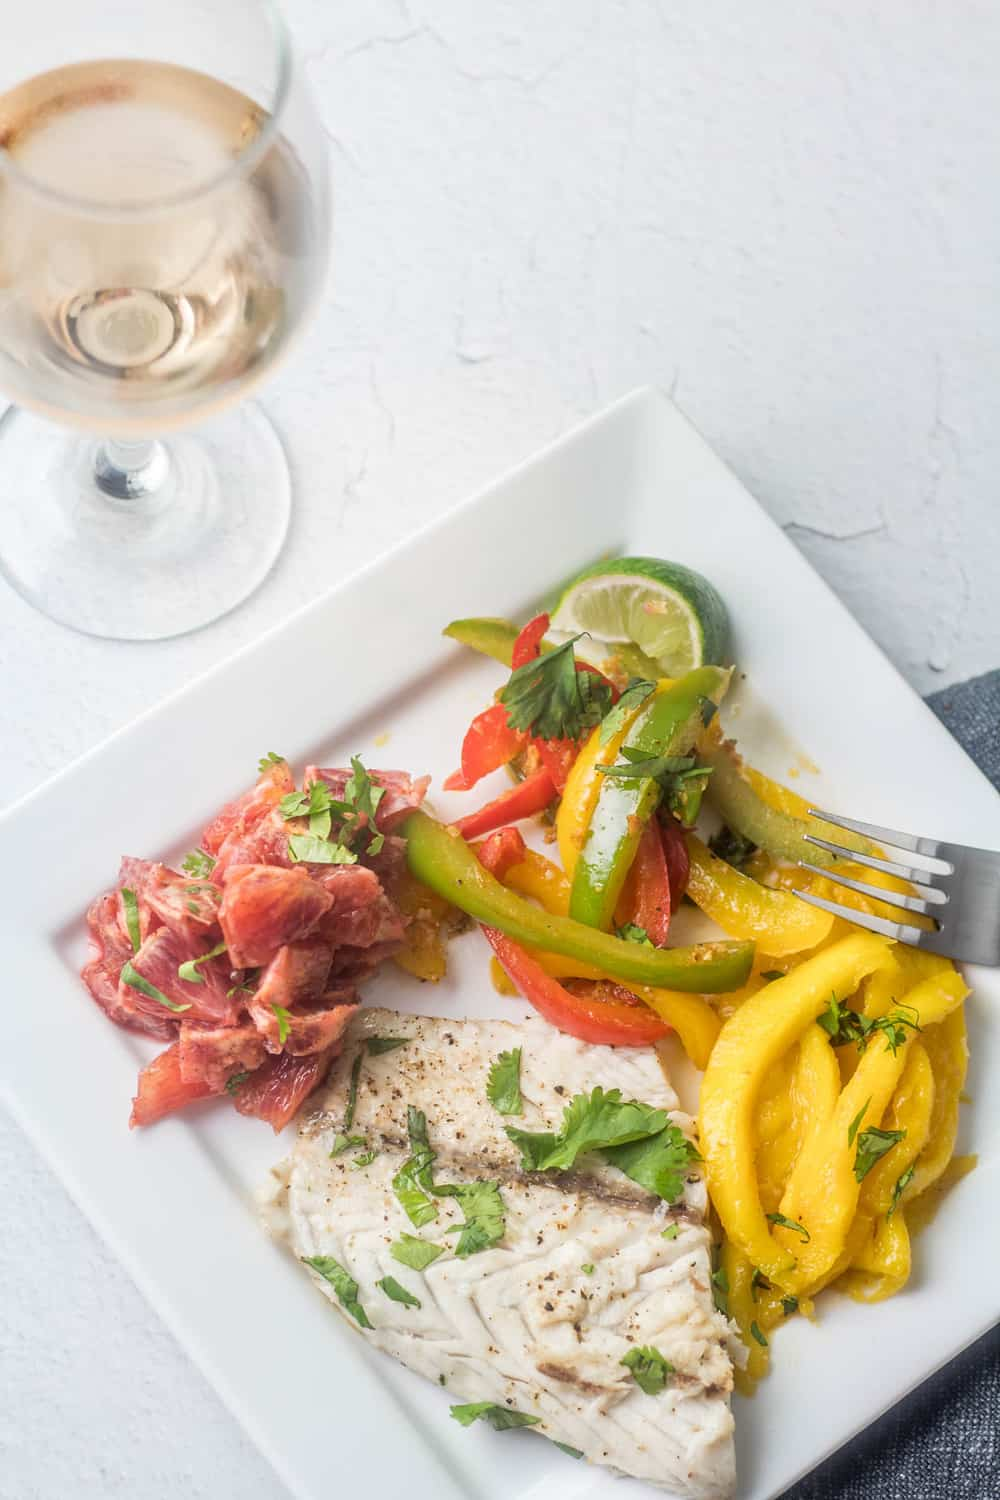 A bird's eye view of a square white plate with a Caribbean style fish fillet with caramelized mangoes, sautéed bell peppers, and orange salad.